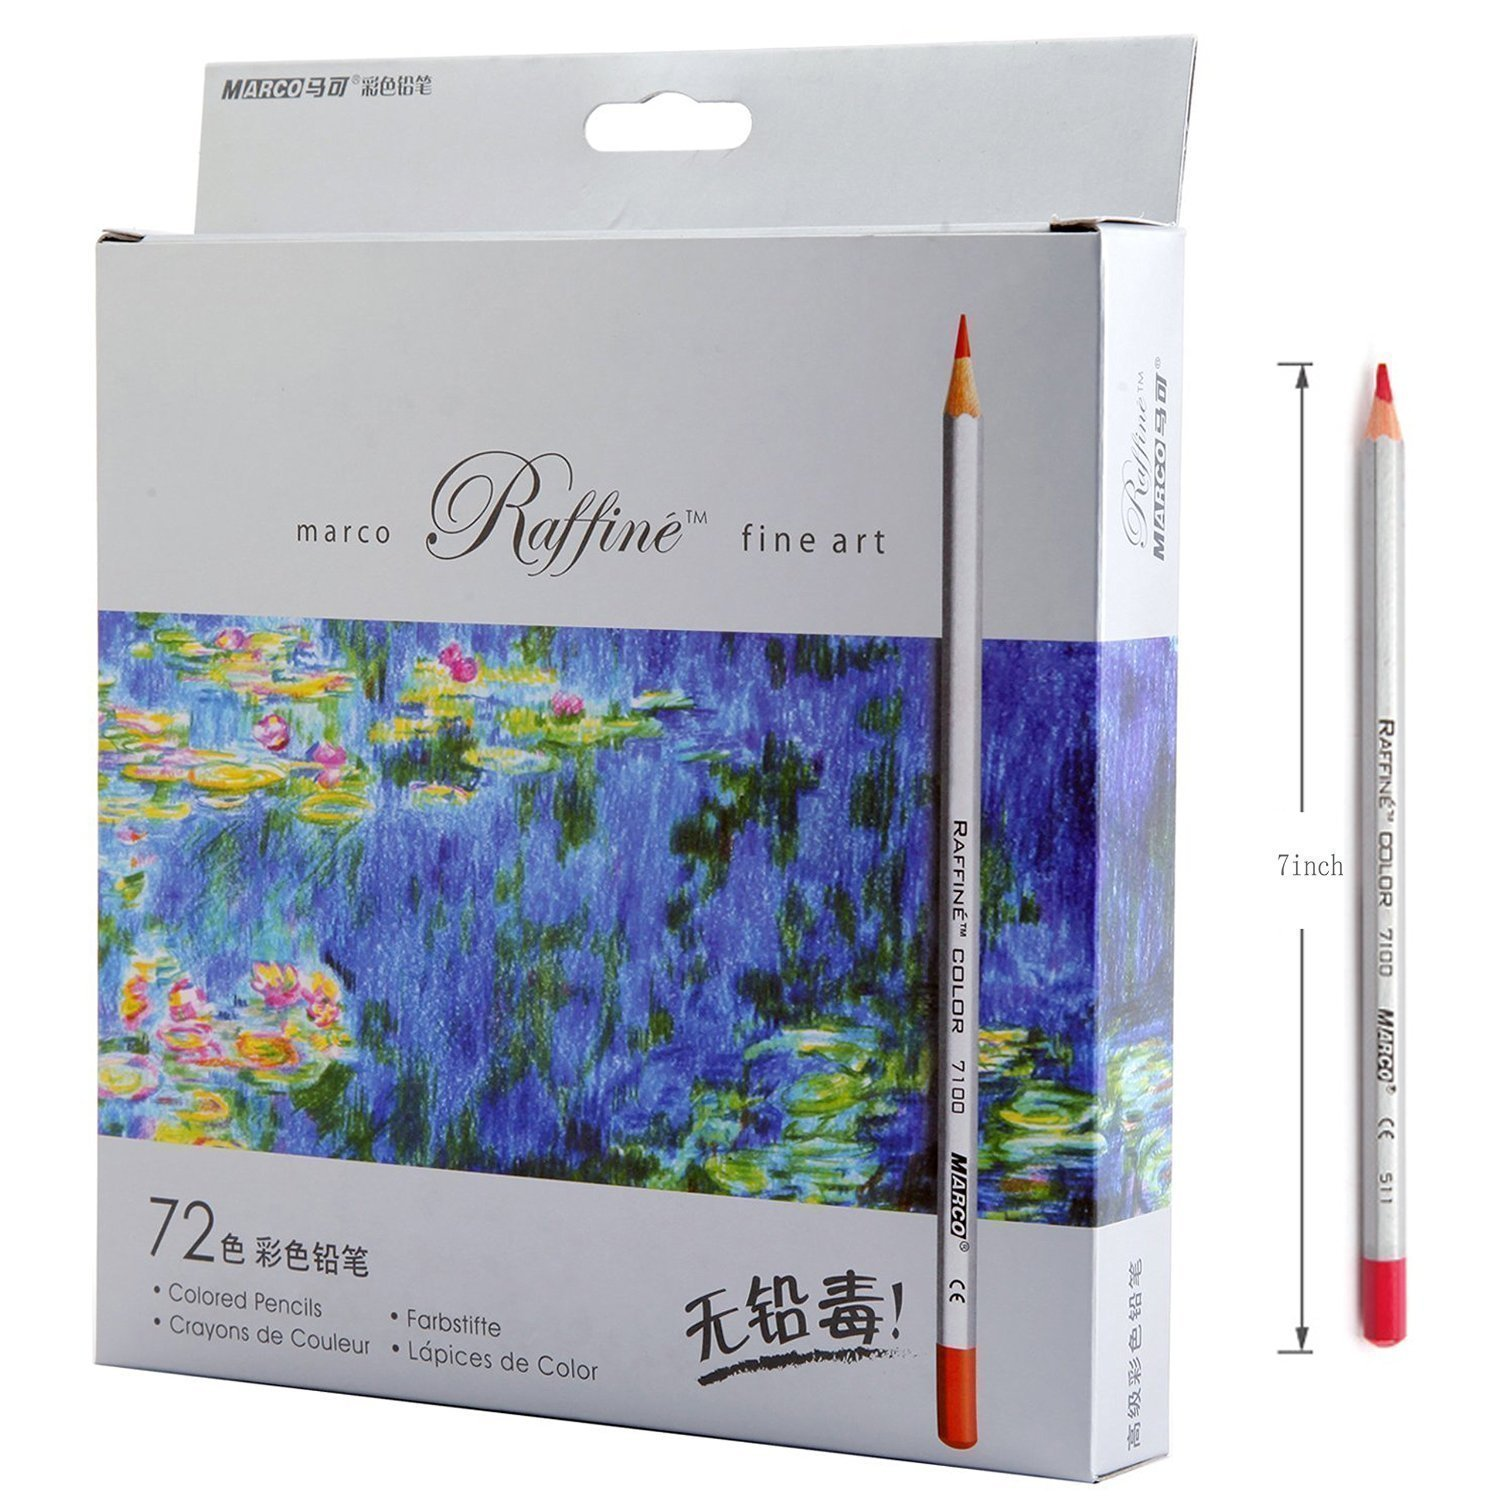 Color art colored pencils - Amazon Com 72 Color Raffine Marco Fine Art Colored Pencils Drawing Pencils For Sketch Secret Garden Coloring Book Not Included Office Products